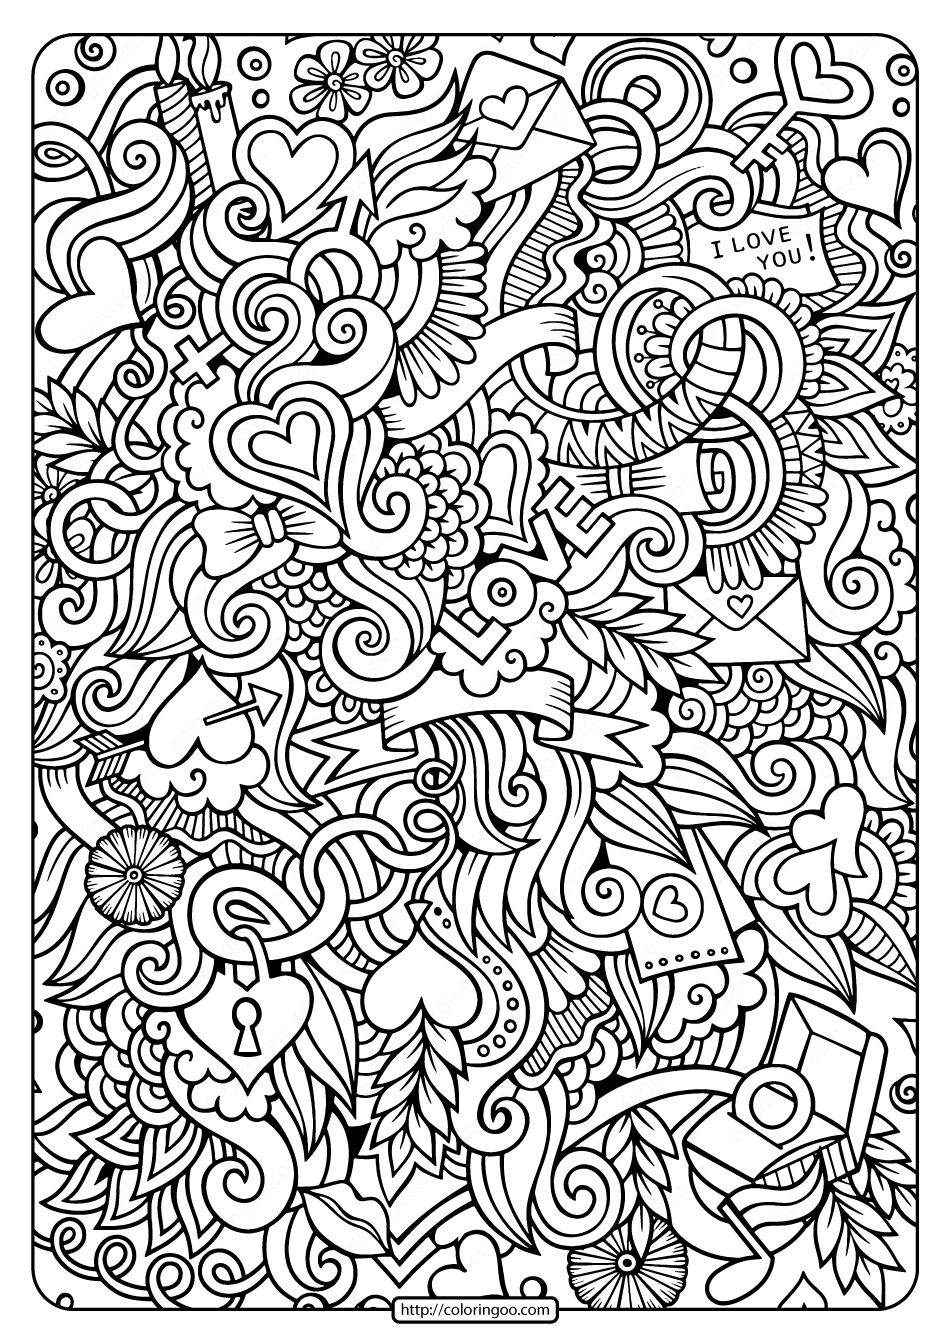 Free Printable Love Doodle Pdf Coloring Page in 2020